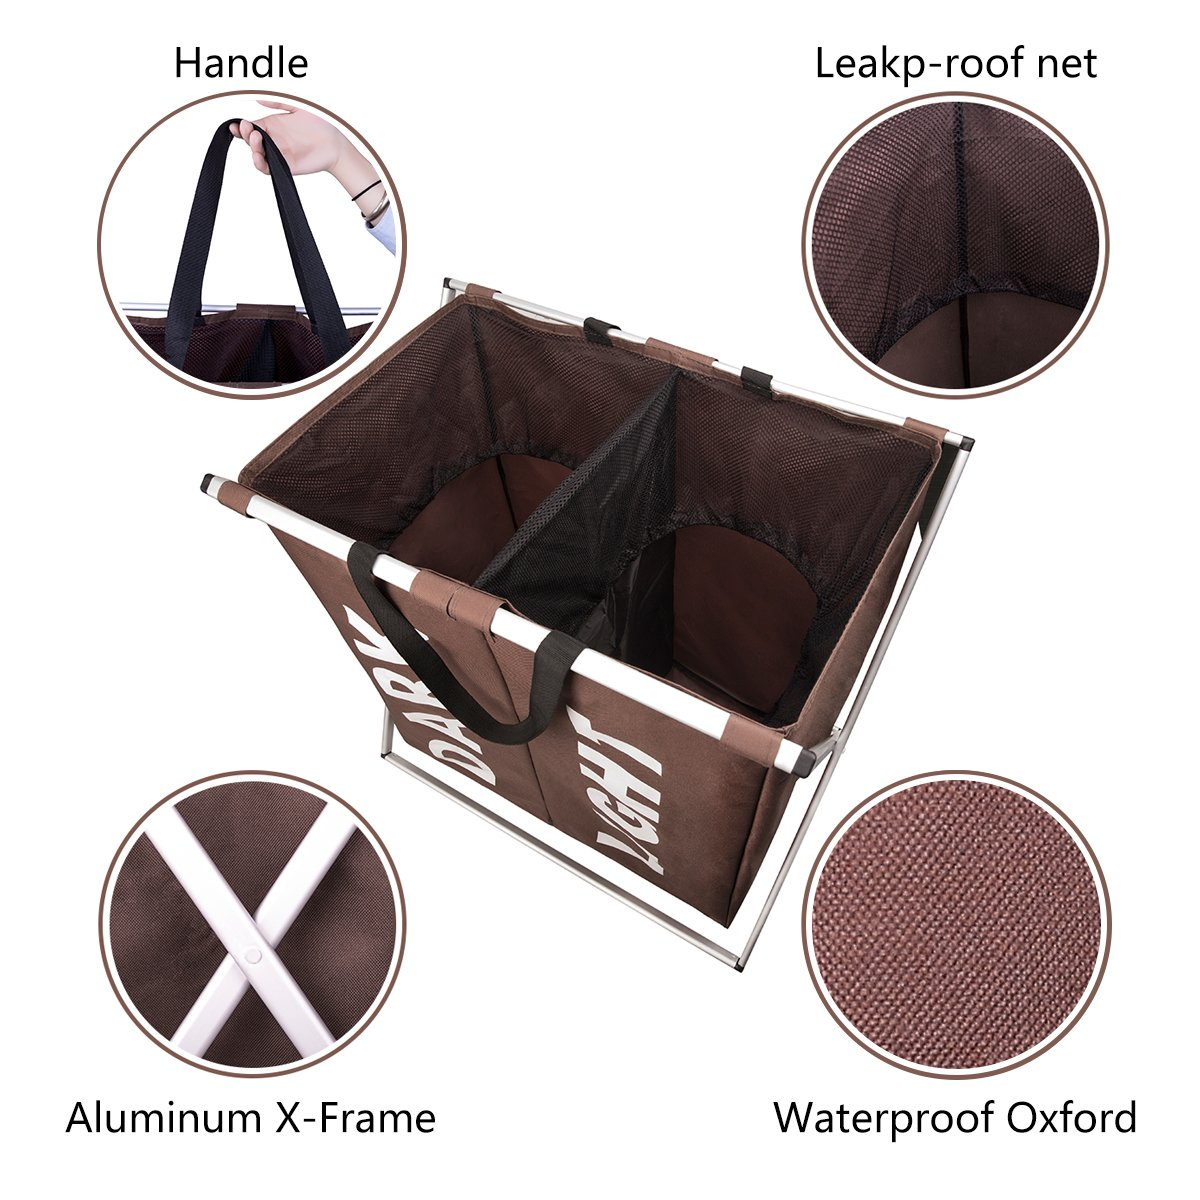 Chrislley X-frame Double Laundry Basket 2 Section Oxford Dirty Laundry Hamper Sorter Waterproof with Handles (Coffee)